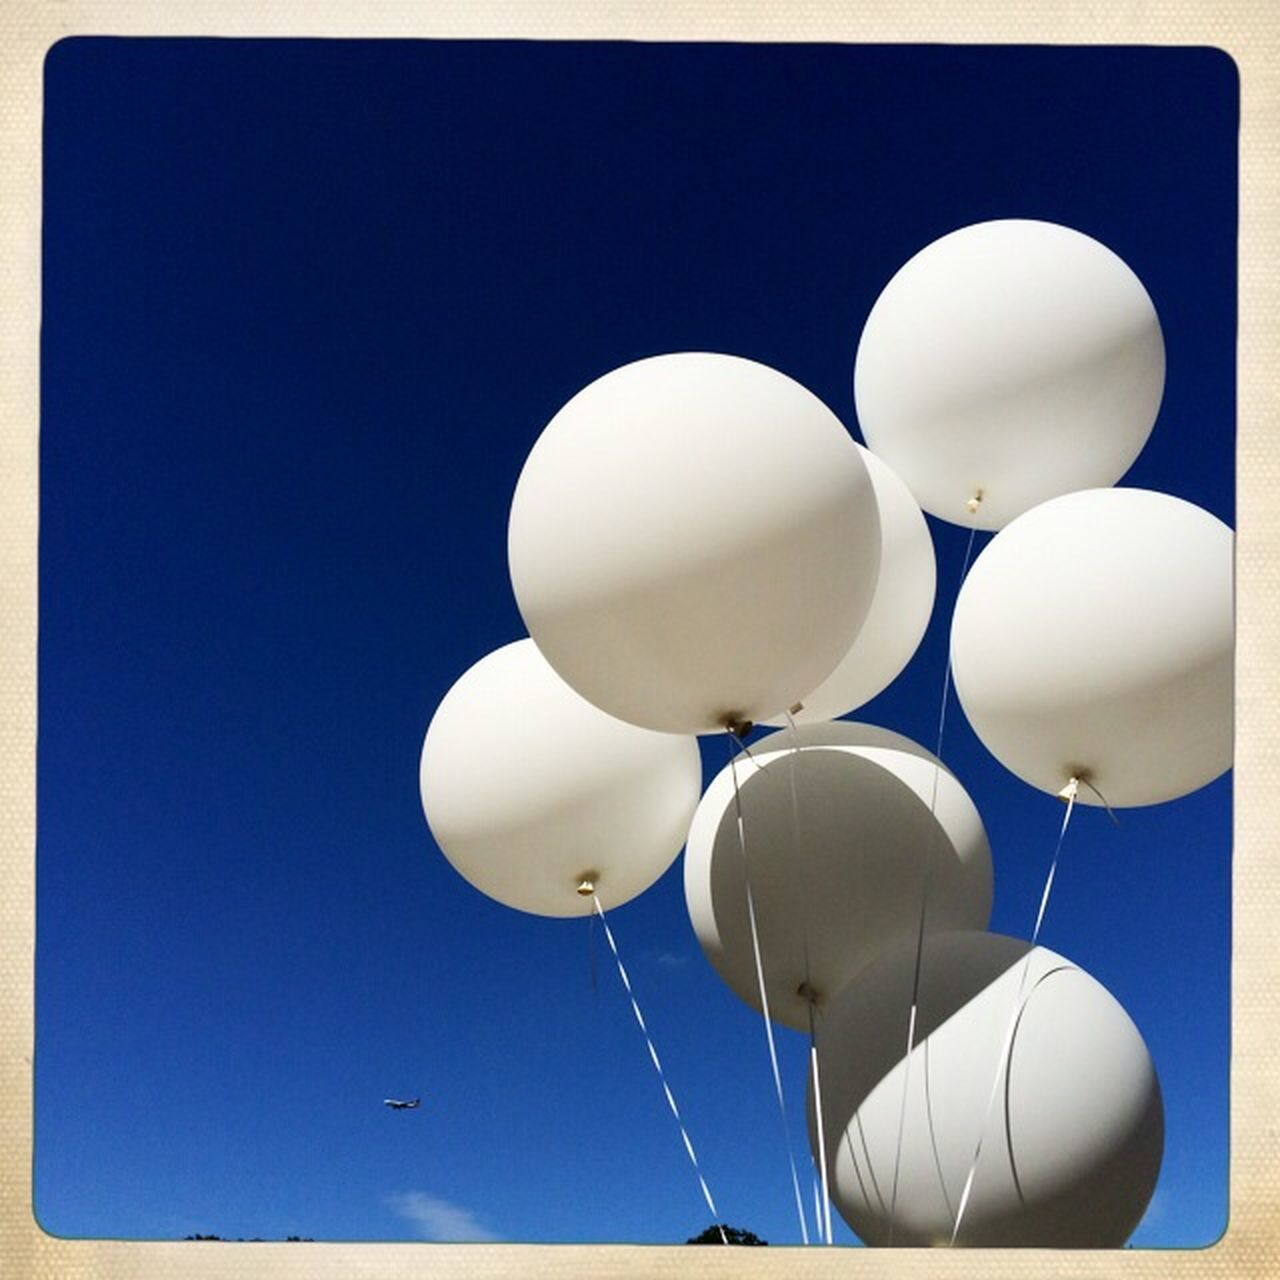 balloon, blue, helium balloon, low angle view, helium, celebration, day, no people, outdoors, clear sky, sky